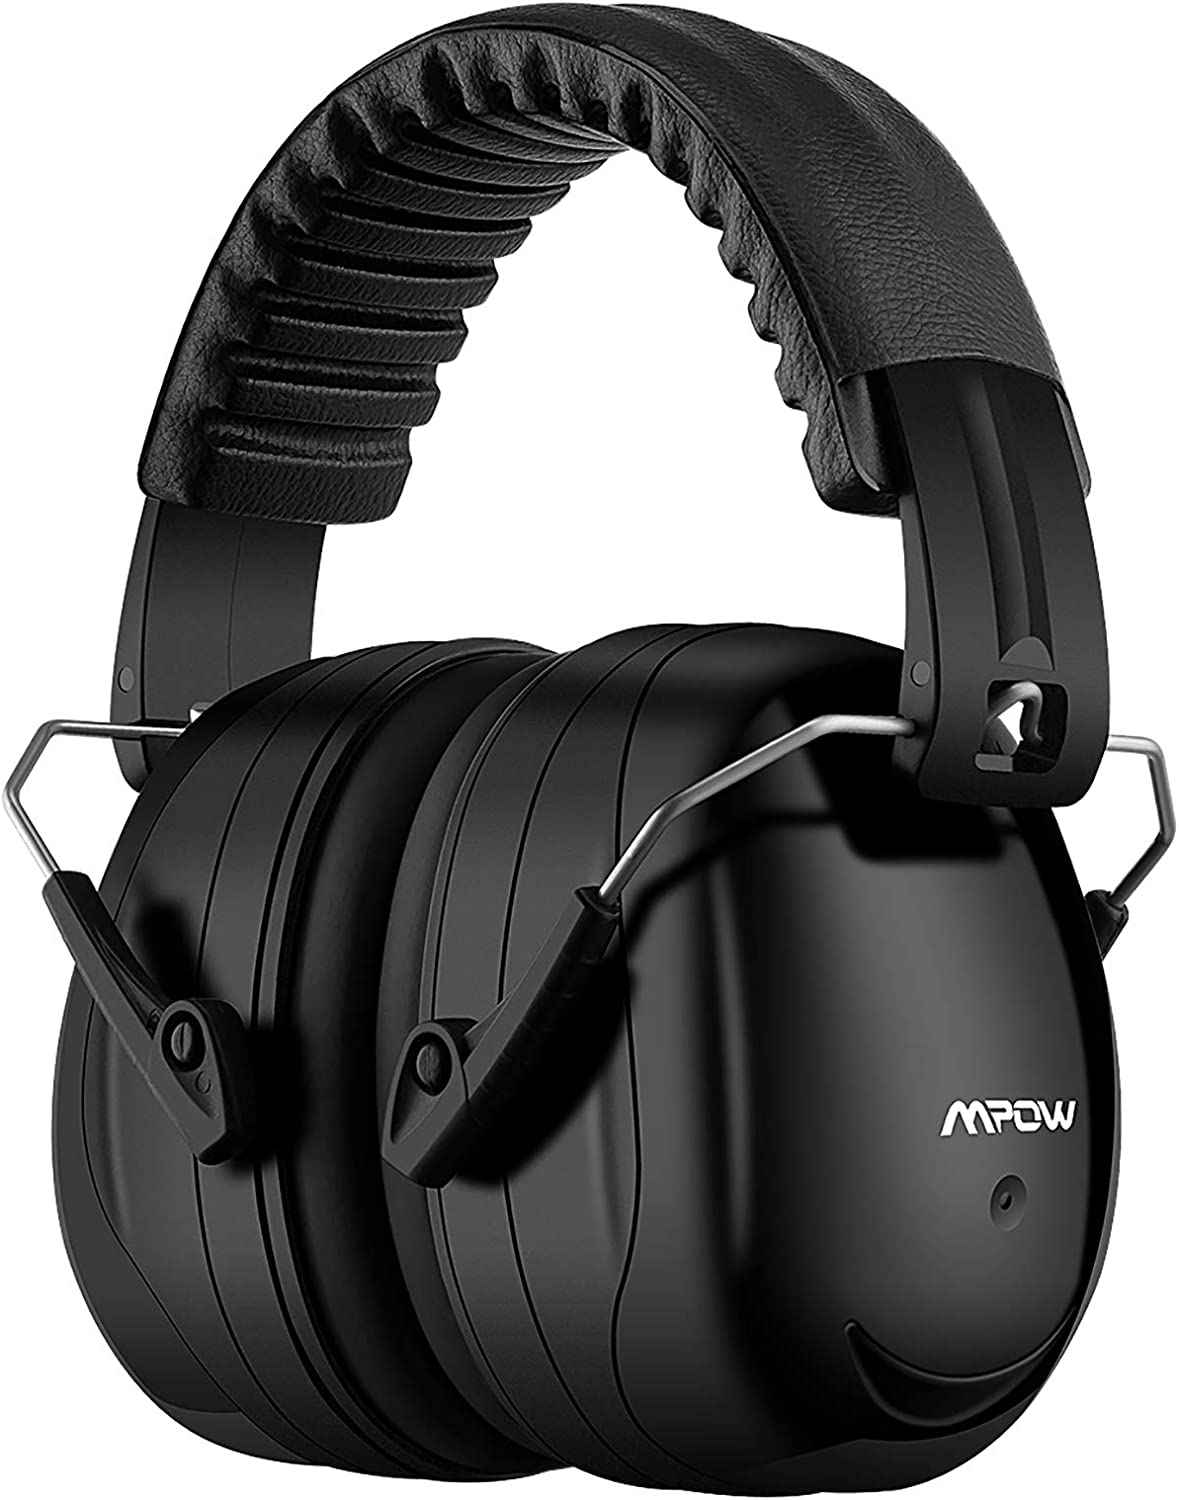 Mpow 035 Noise Reduction Safety Ear Muffs, Shooters Hearing Protection Ear Muffs, Adjustable Shooting Ear Muffs, NRR 28dB Ear Defenders for Shooting Hunting Season, with a Carrying Bag- Black: Home Improvement